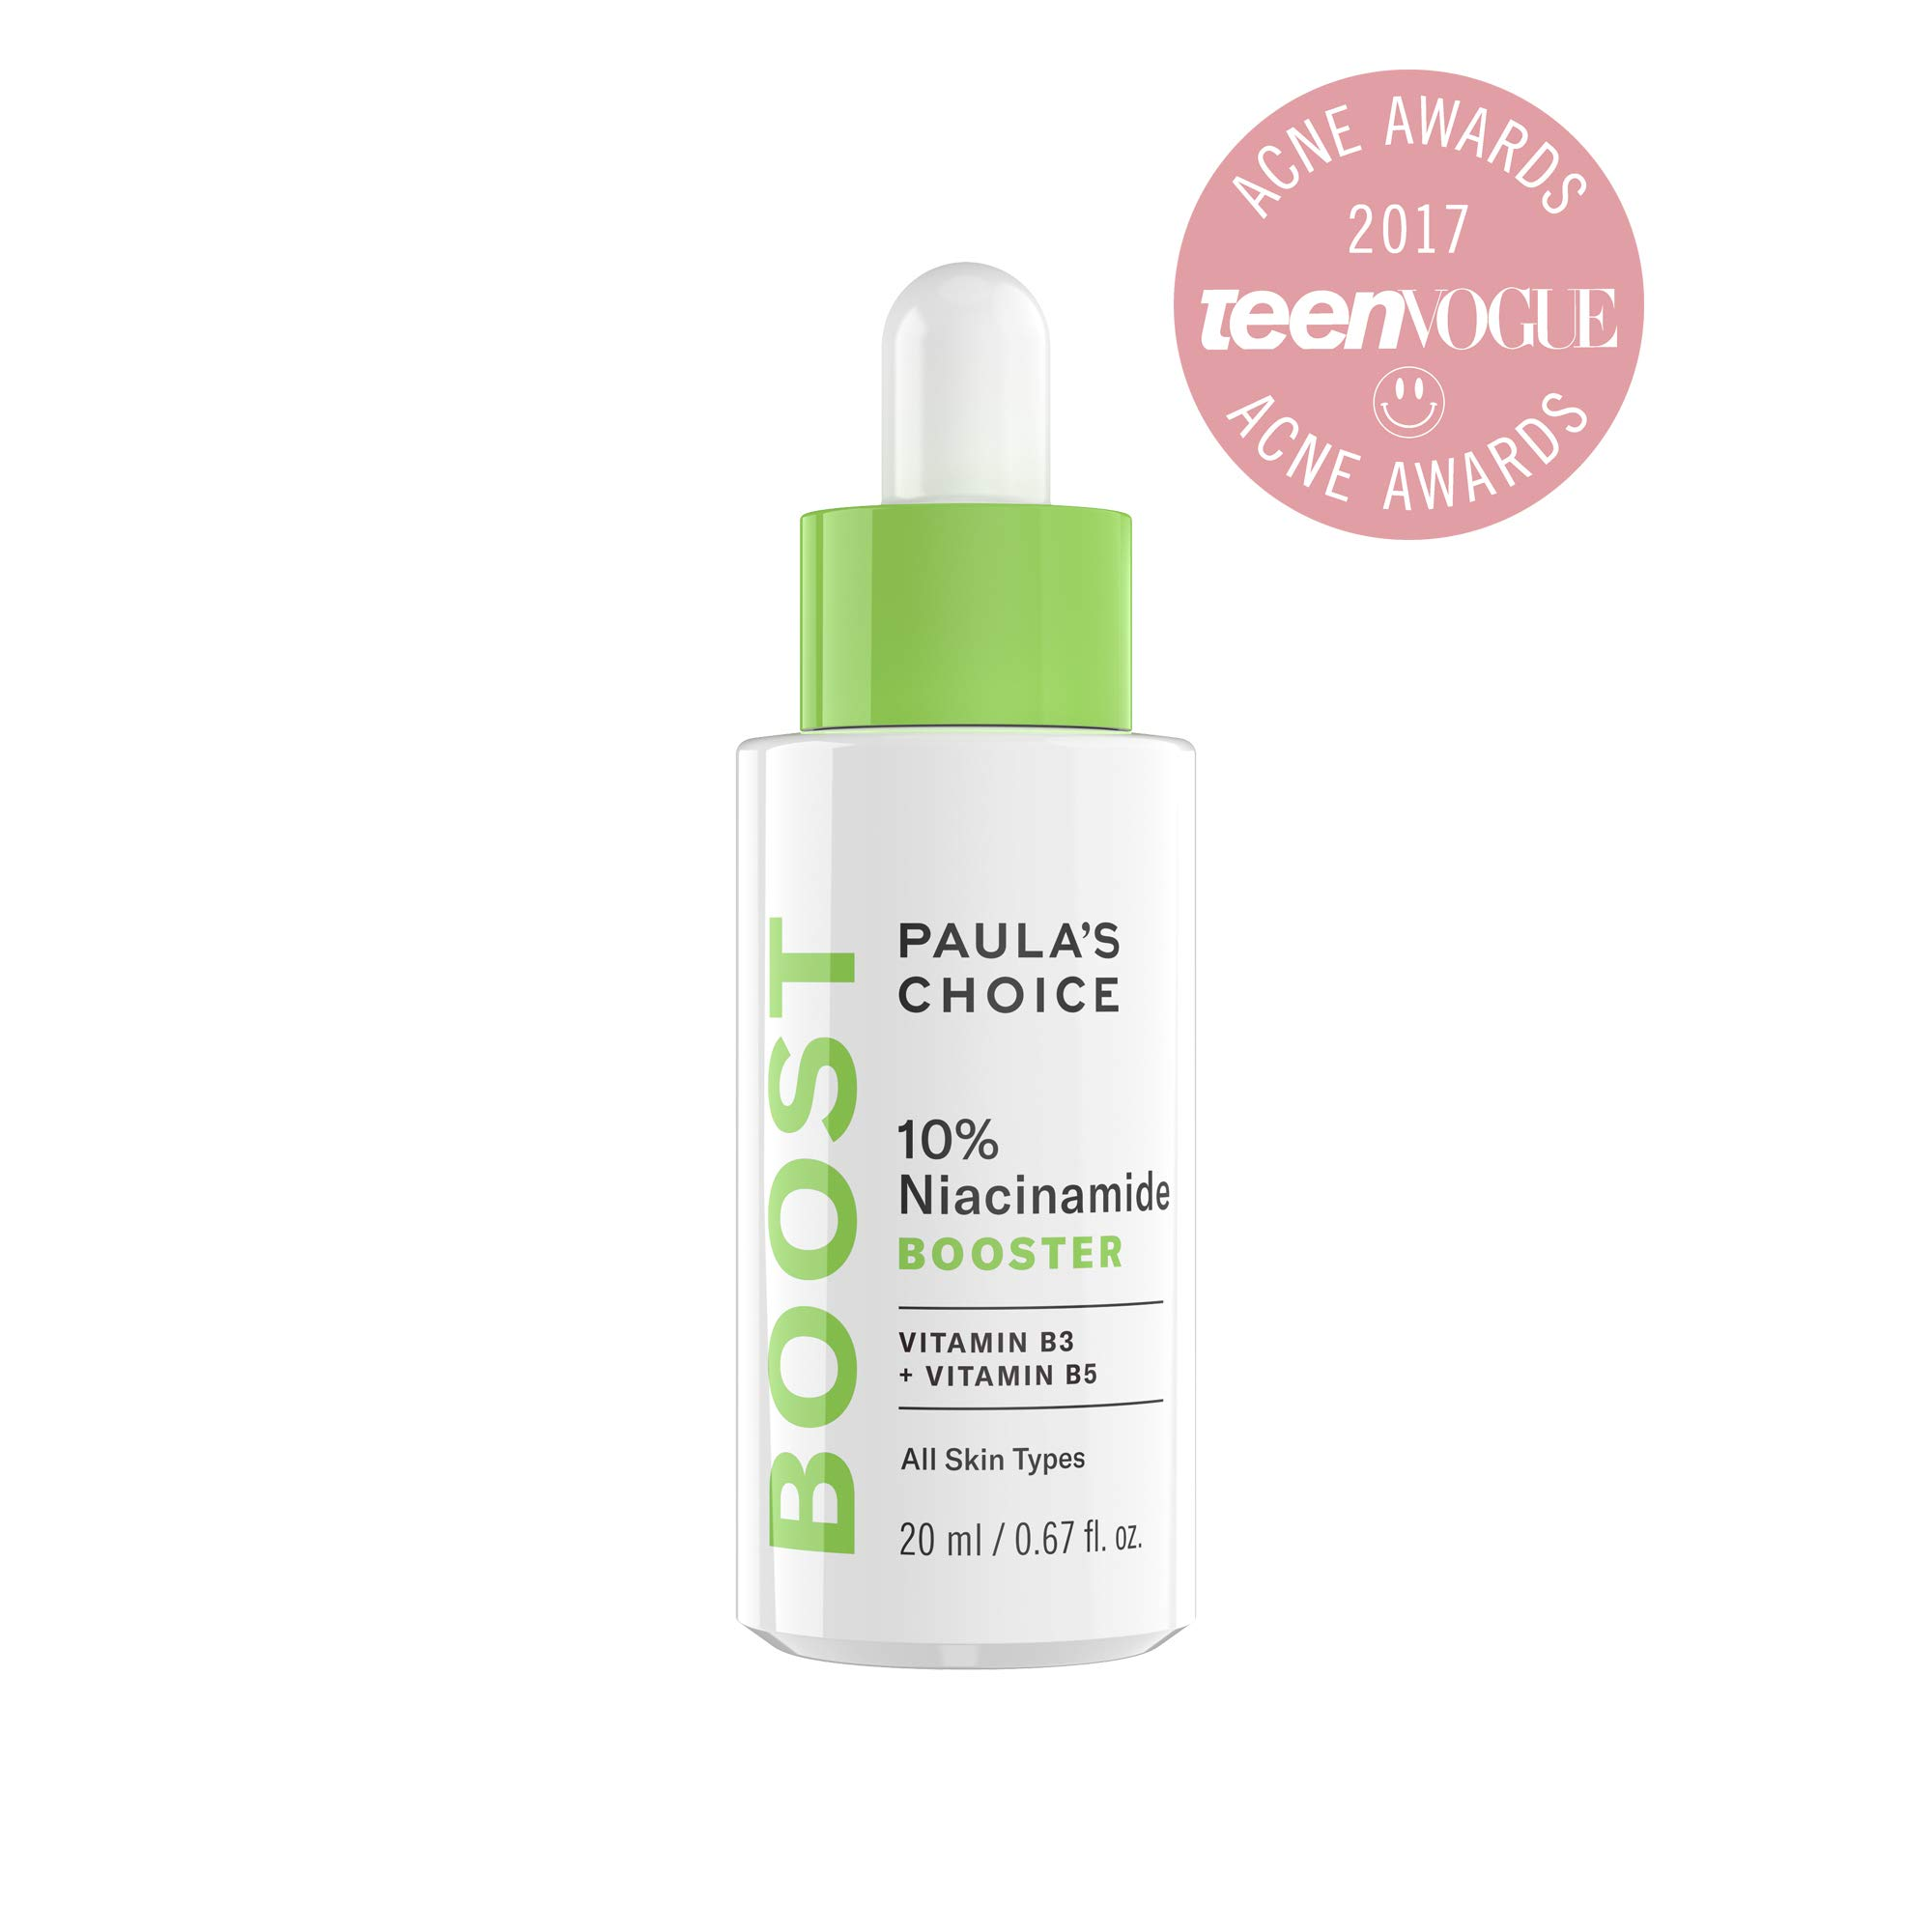 Paula's Choice BOOST 10% Niacinamide (Vitamin B3) Booster, 0.67 Ounce Bottle for Enlarged Facial Pores & Wrinkles-Normal Oily Dry Skin